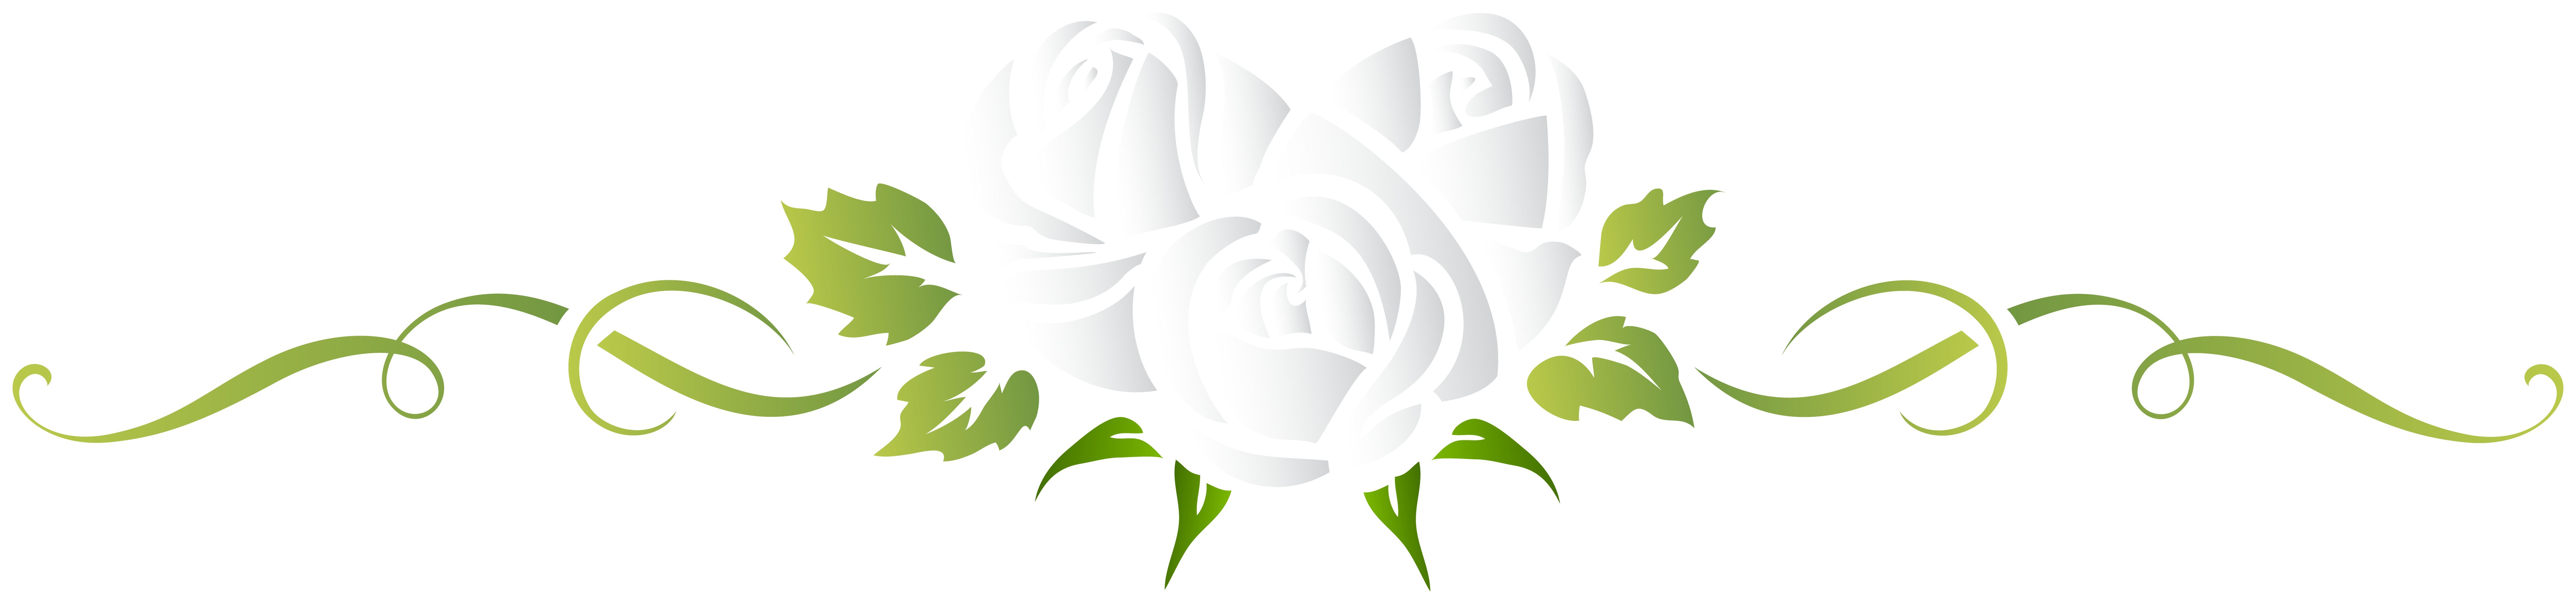 Flower heart clipart black and white graphic freeuse Heart Rose White Floral Ornament PNG Clip Art | Gallery ... graphic freeuse